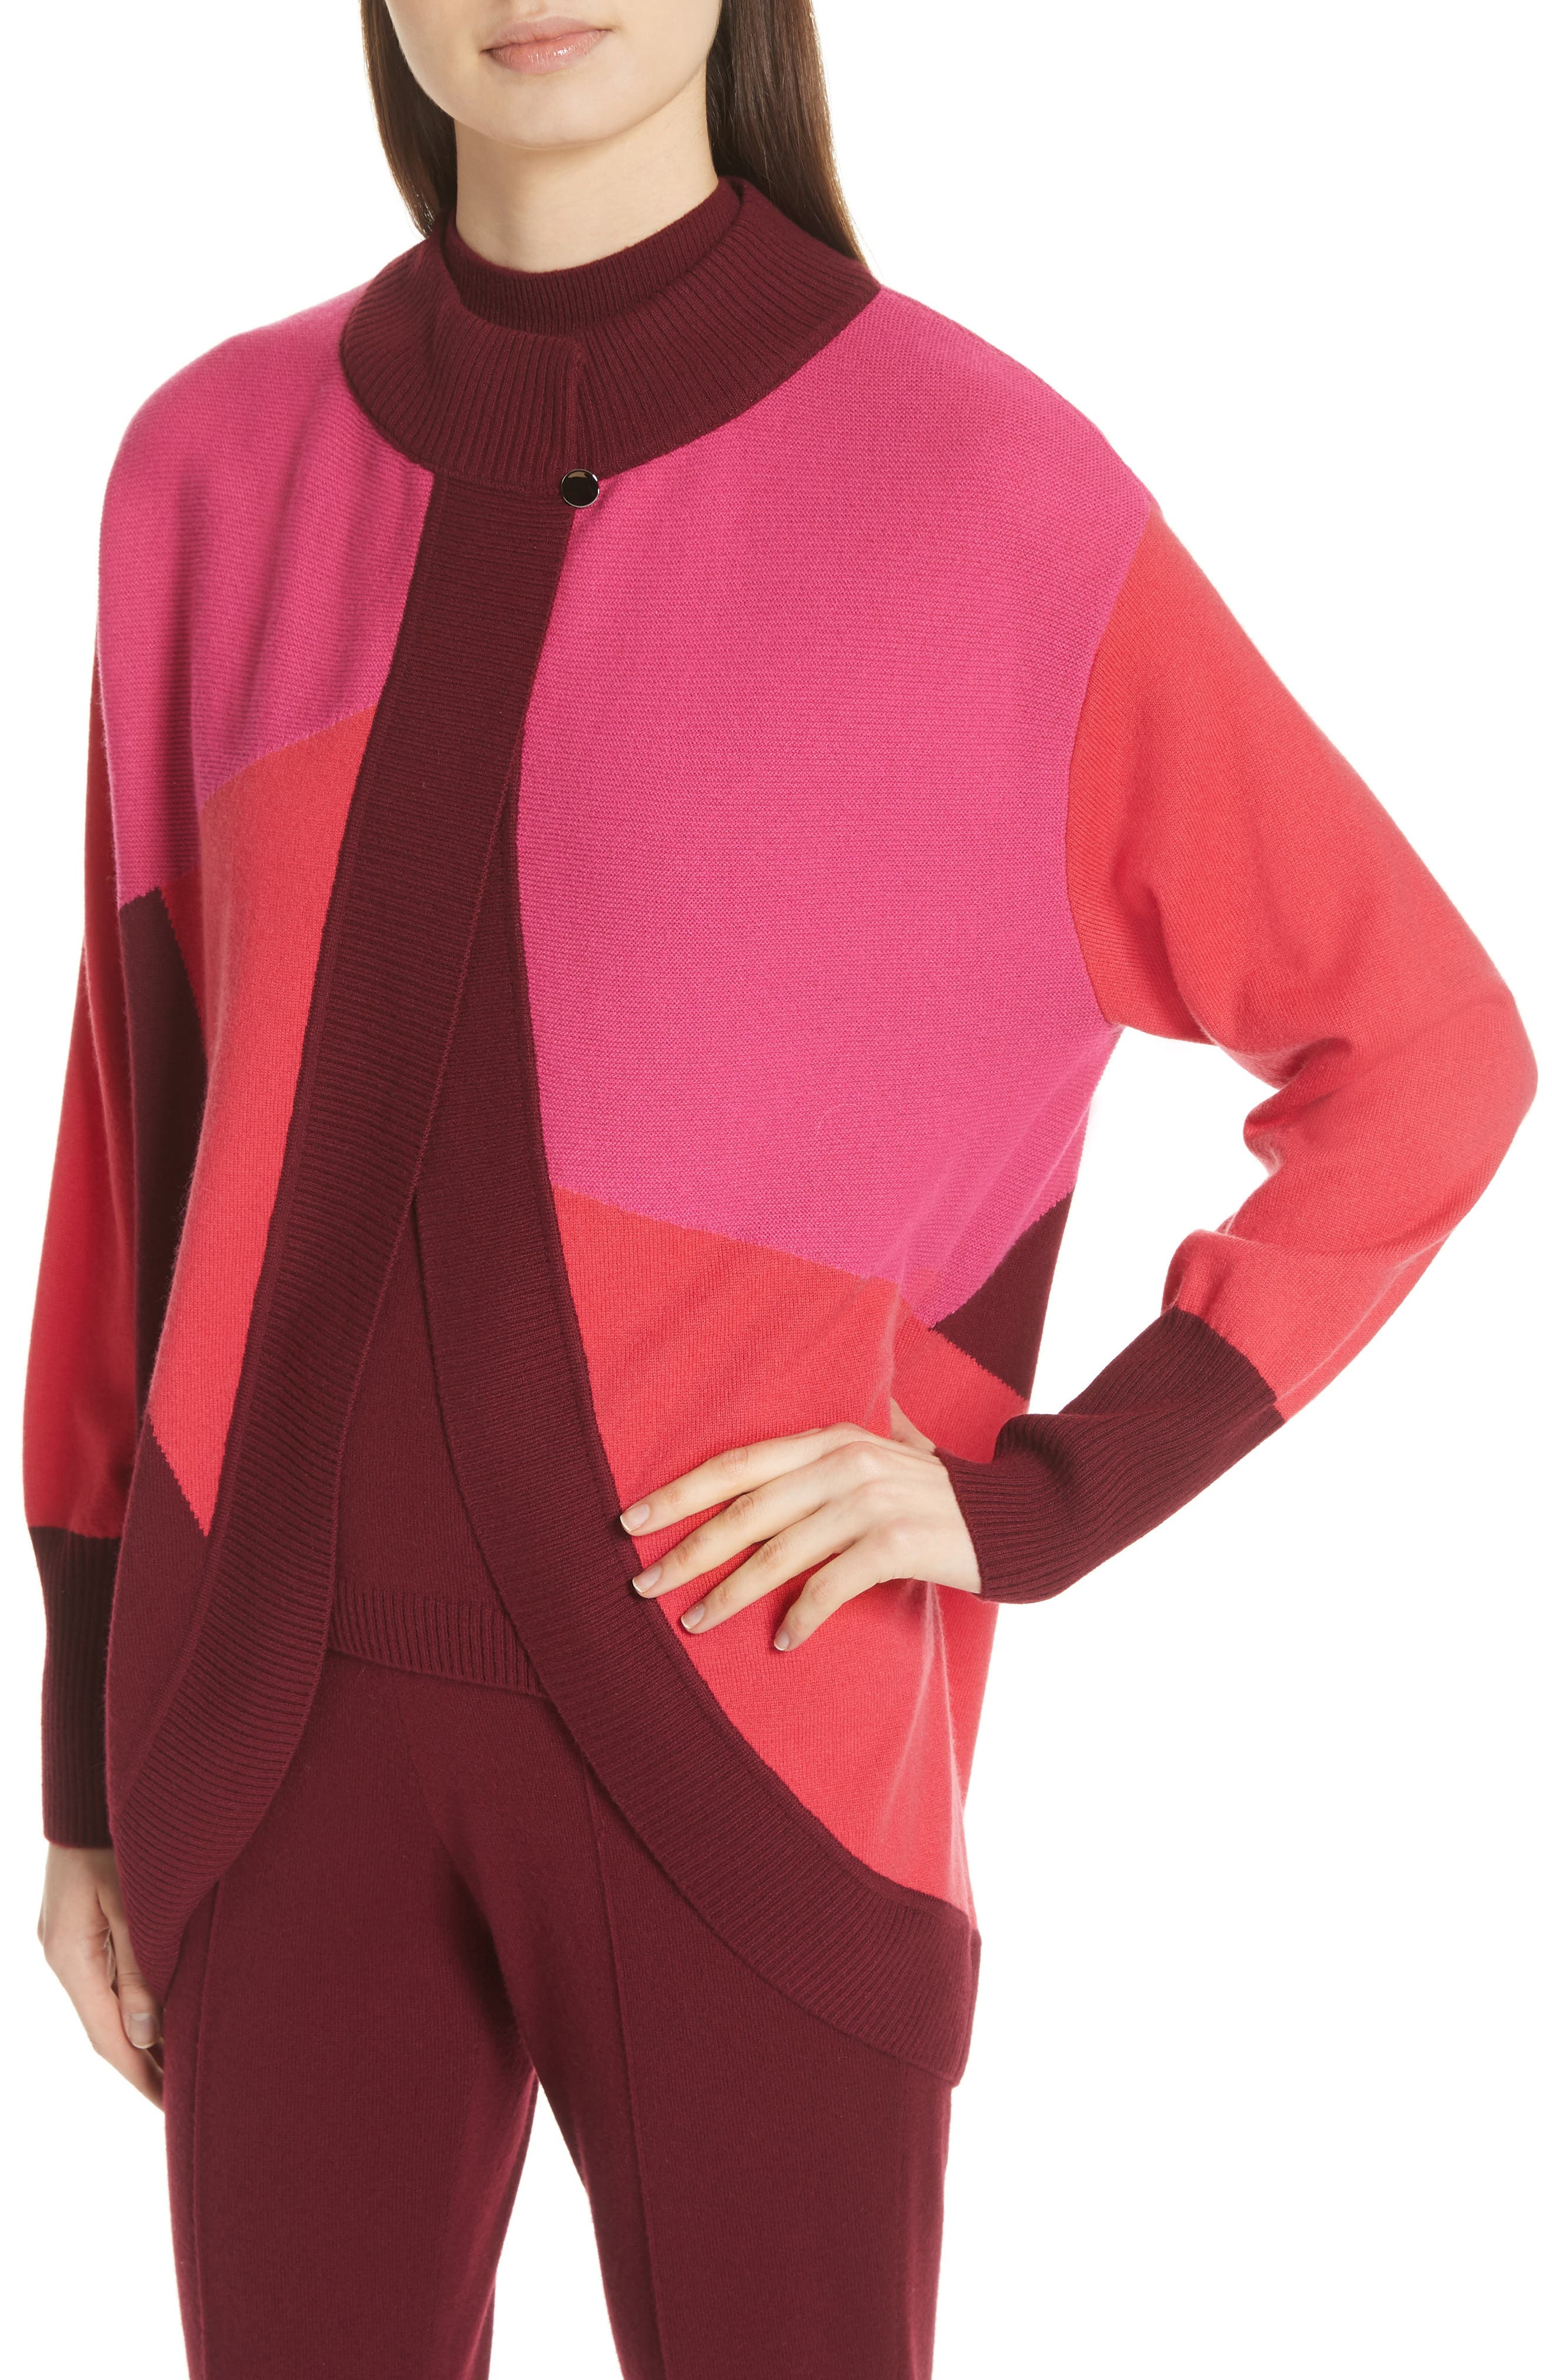 ST. JOHN COLLECTION,                             Colorblock Intarsia Knit Cardigan,                             Alternate thumbnail 4, color,                             650